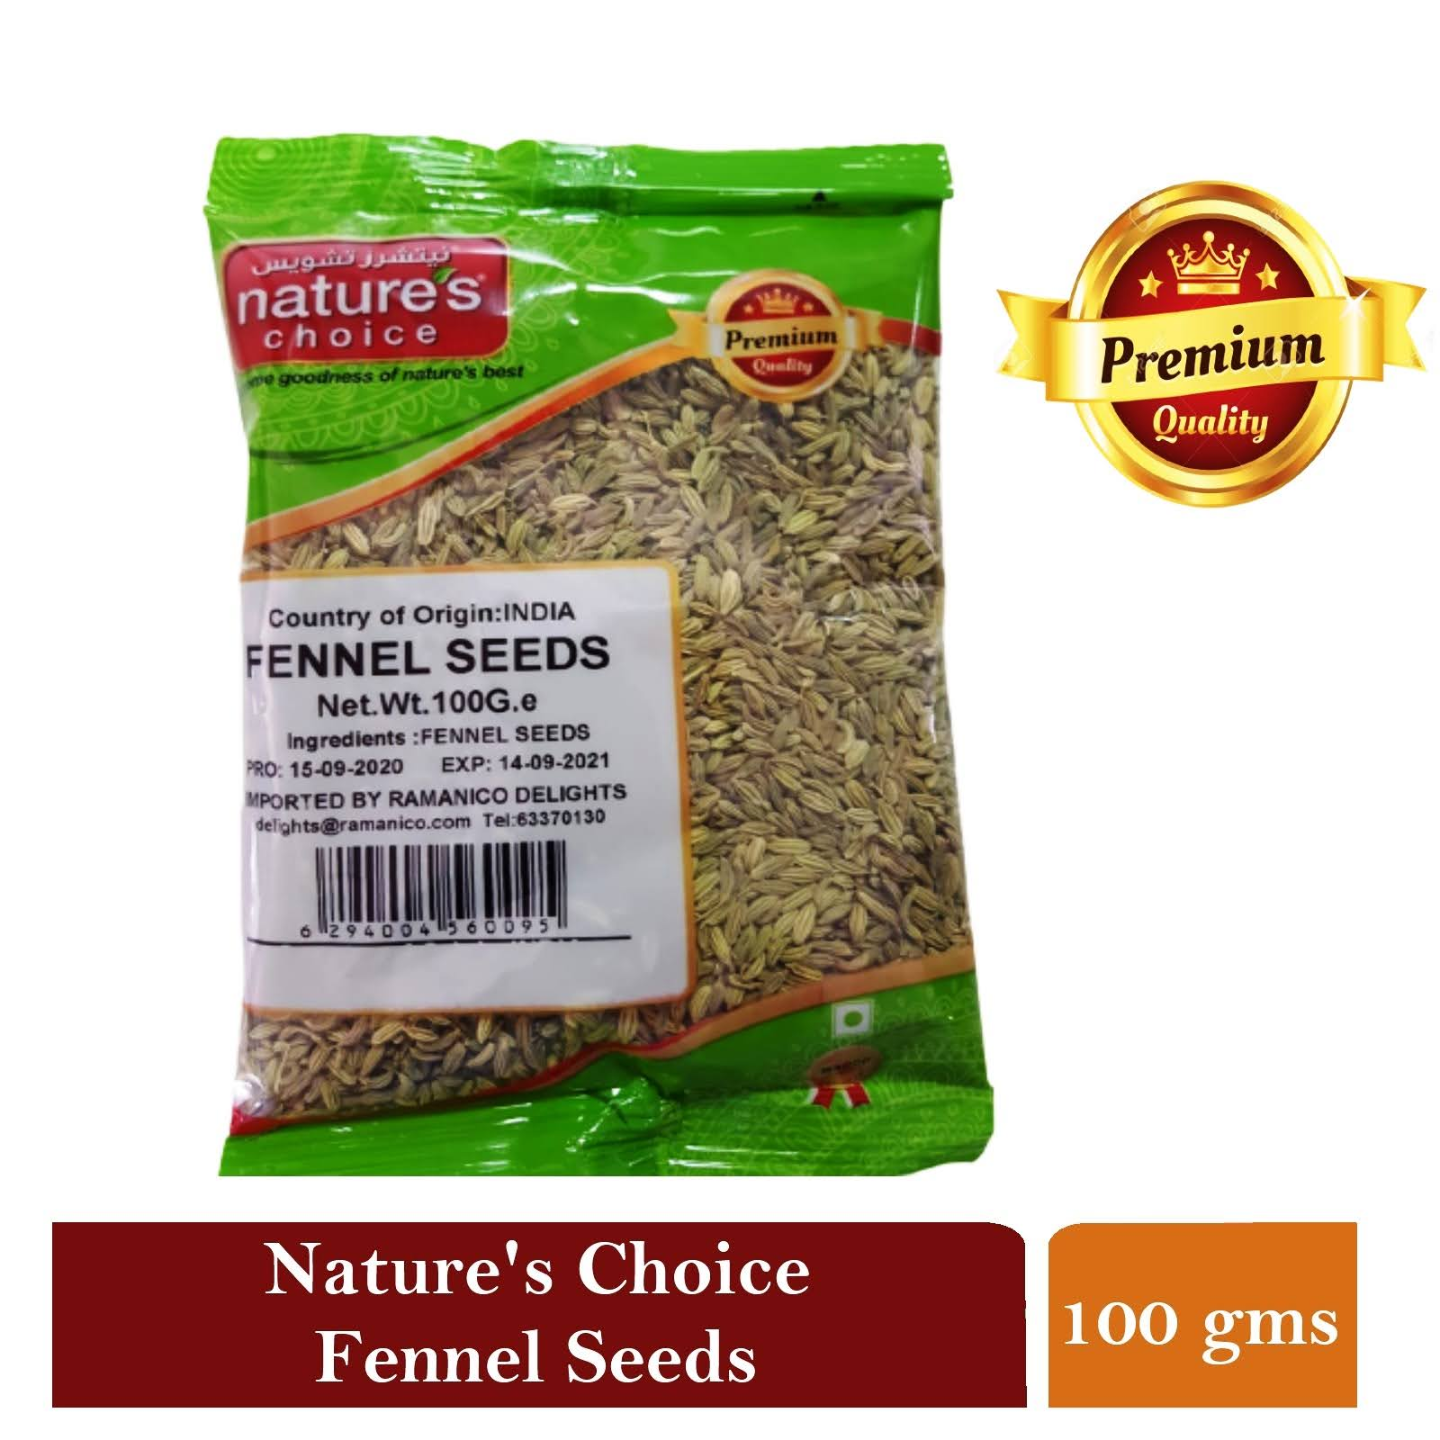 NATURES CHOICE PREMIUM QUALITY FENNEL SEEDS 100G